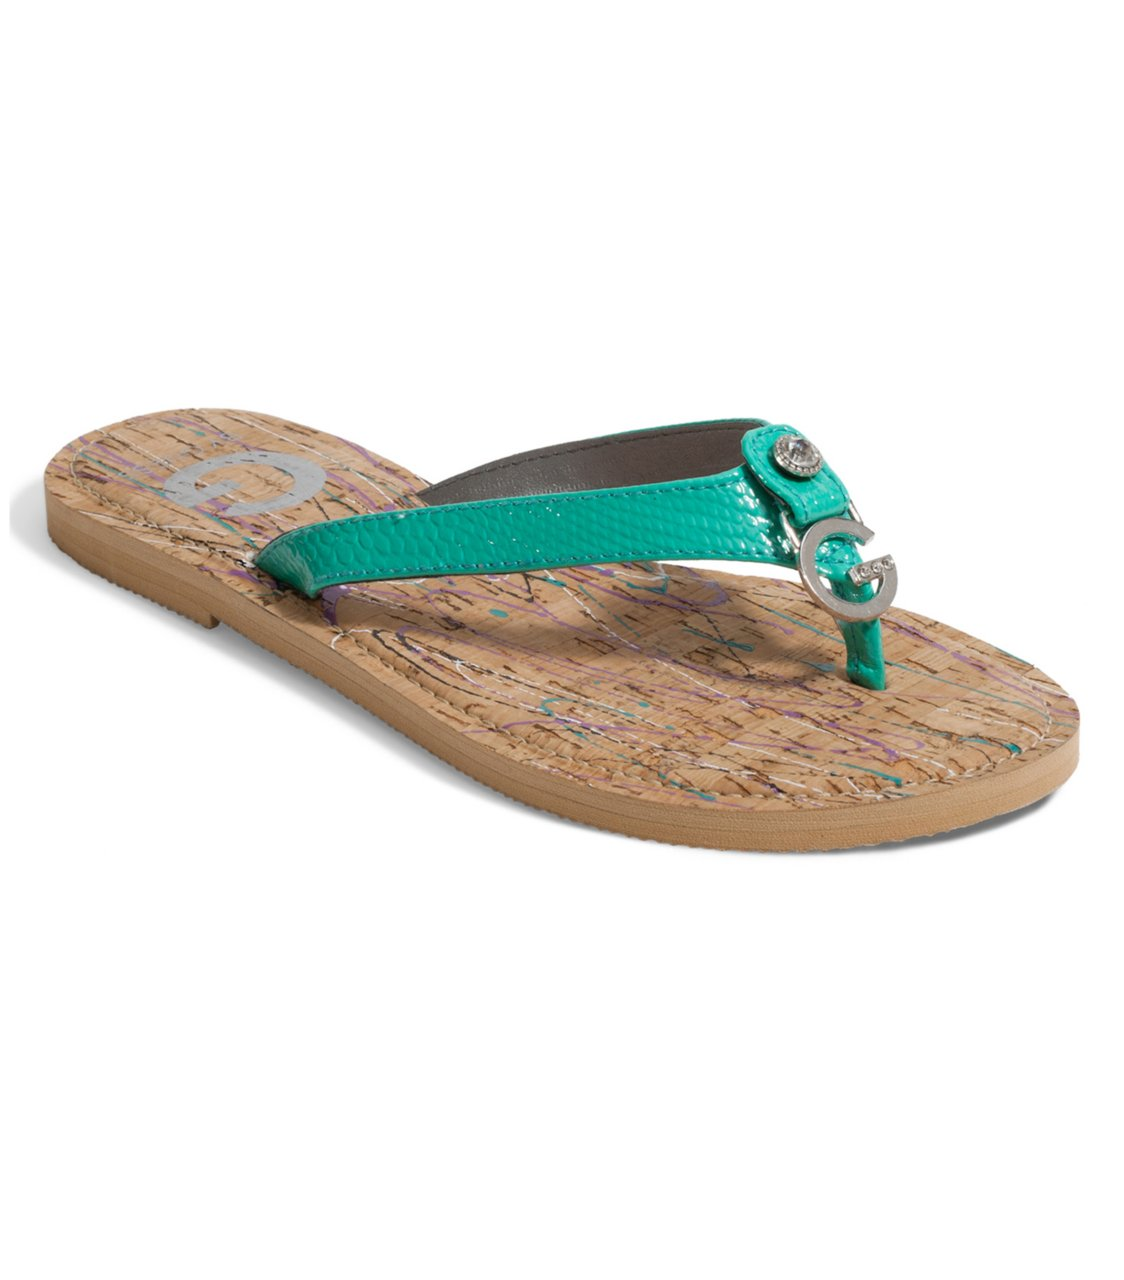 G by GUESS Bluff Flip-Flop